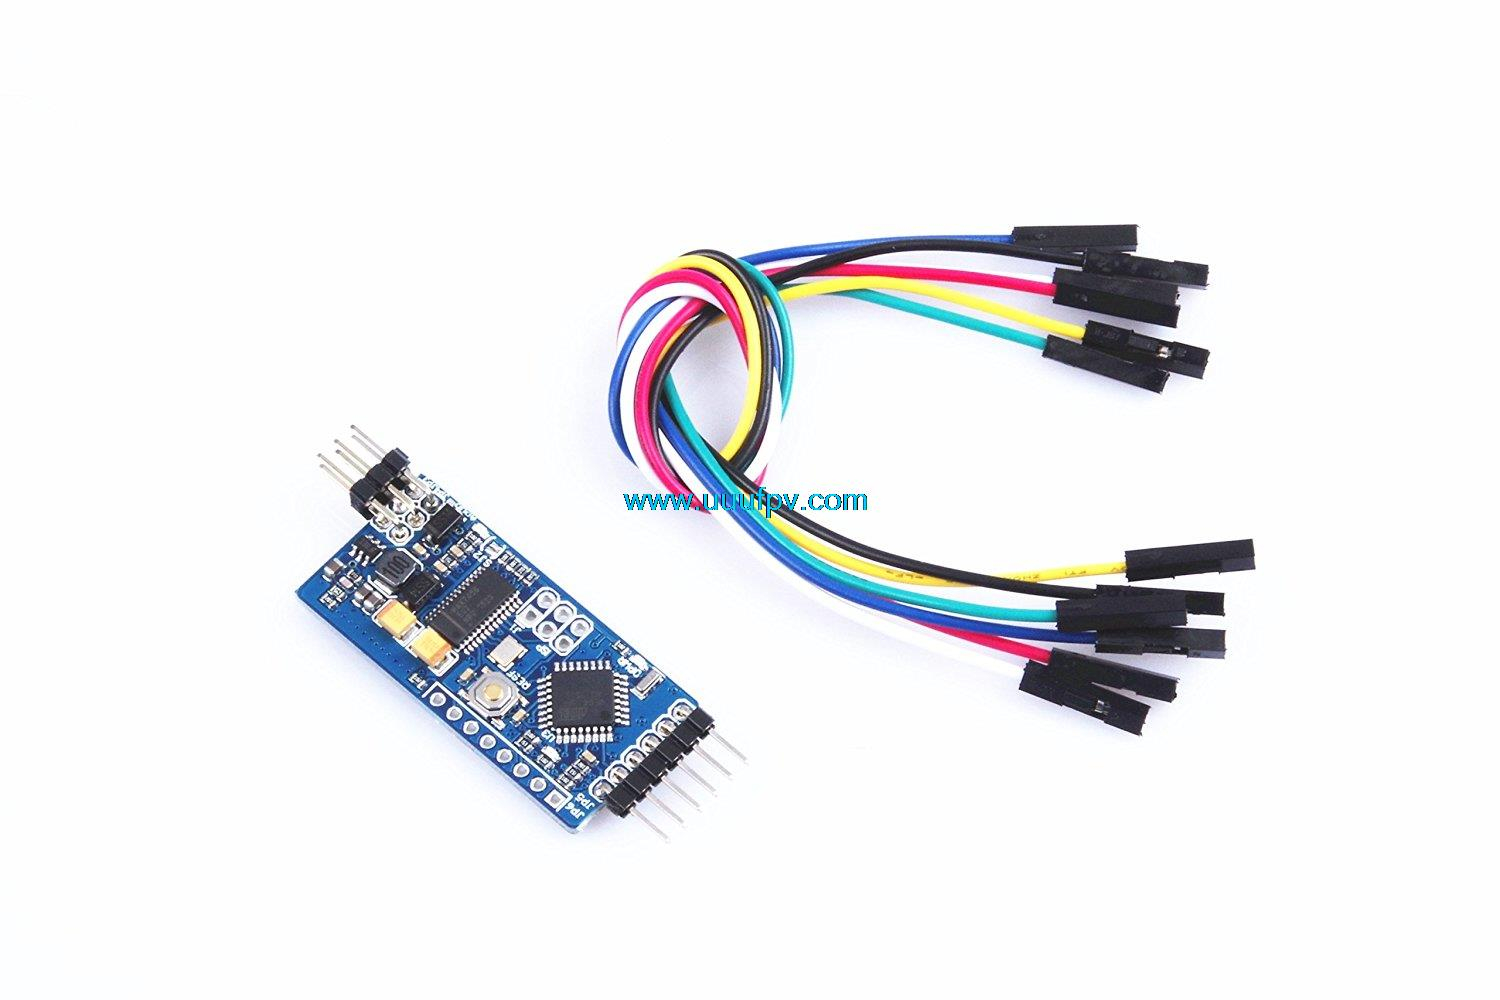 fpv camera APM OSD Mini OSD RC Flight Control Board V2.0 On-Screen Display MAVLink OSD support APM2.8 APM 2.6 APM 2.52 minimosd mavlink flight contoller attitude osd for apm pixhawk for fpv multicopter camera drone accessories